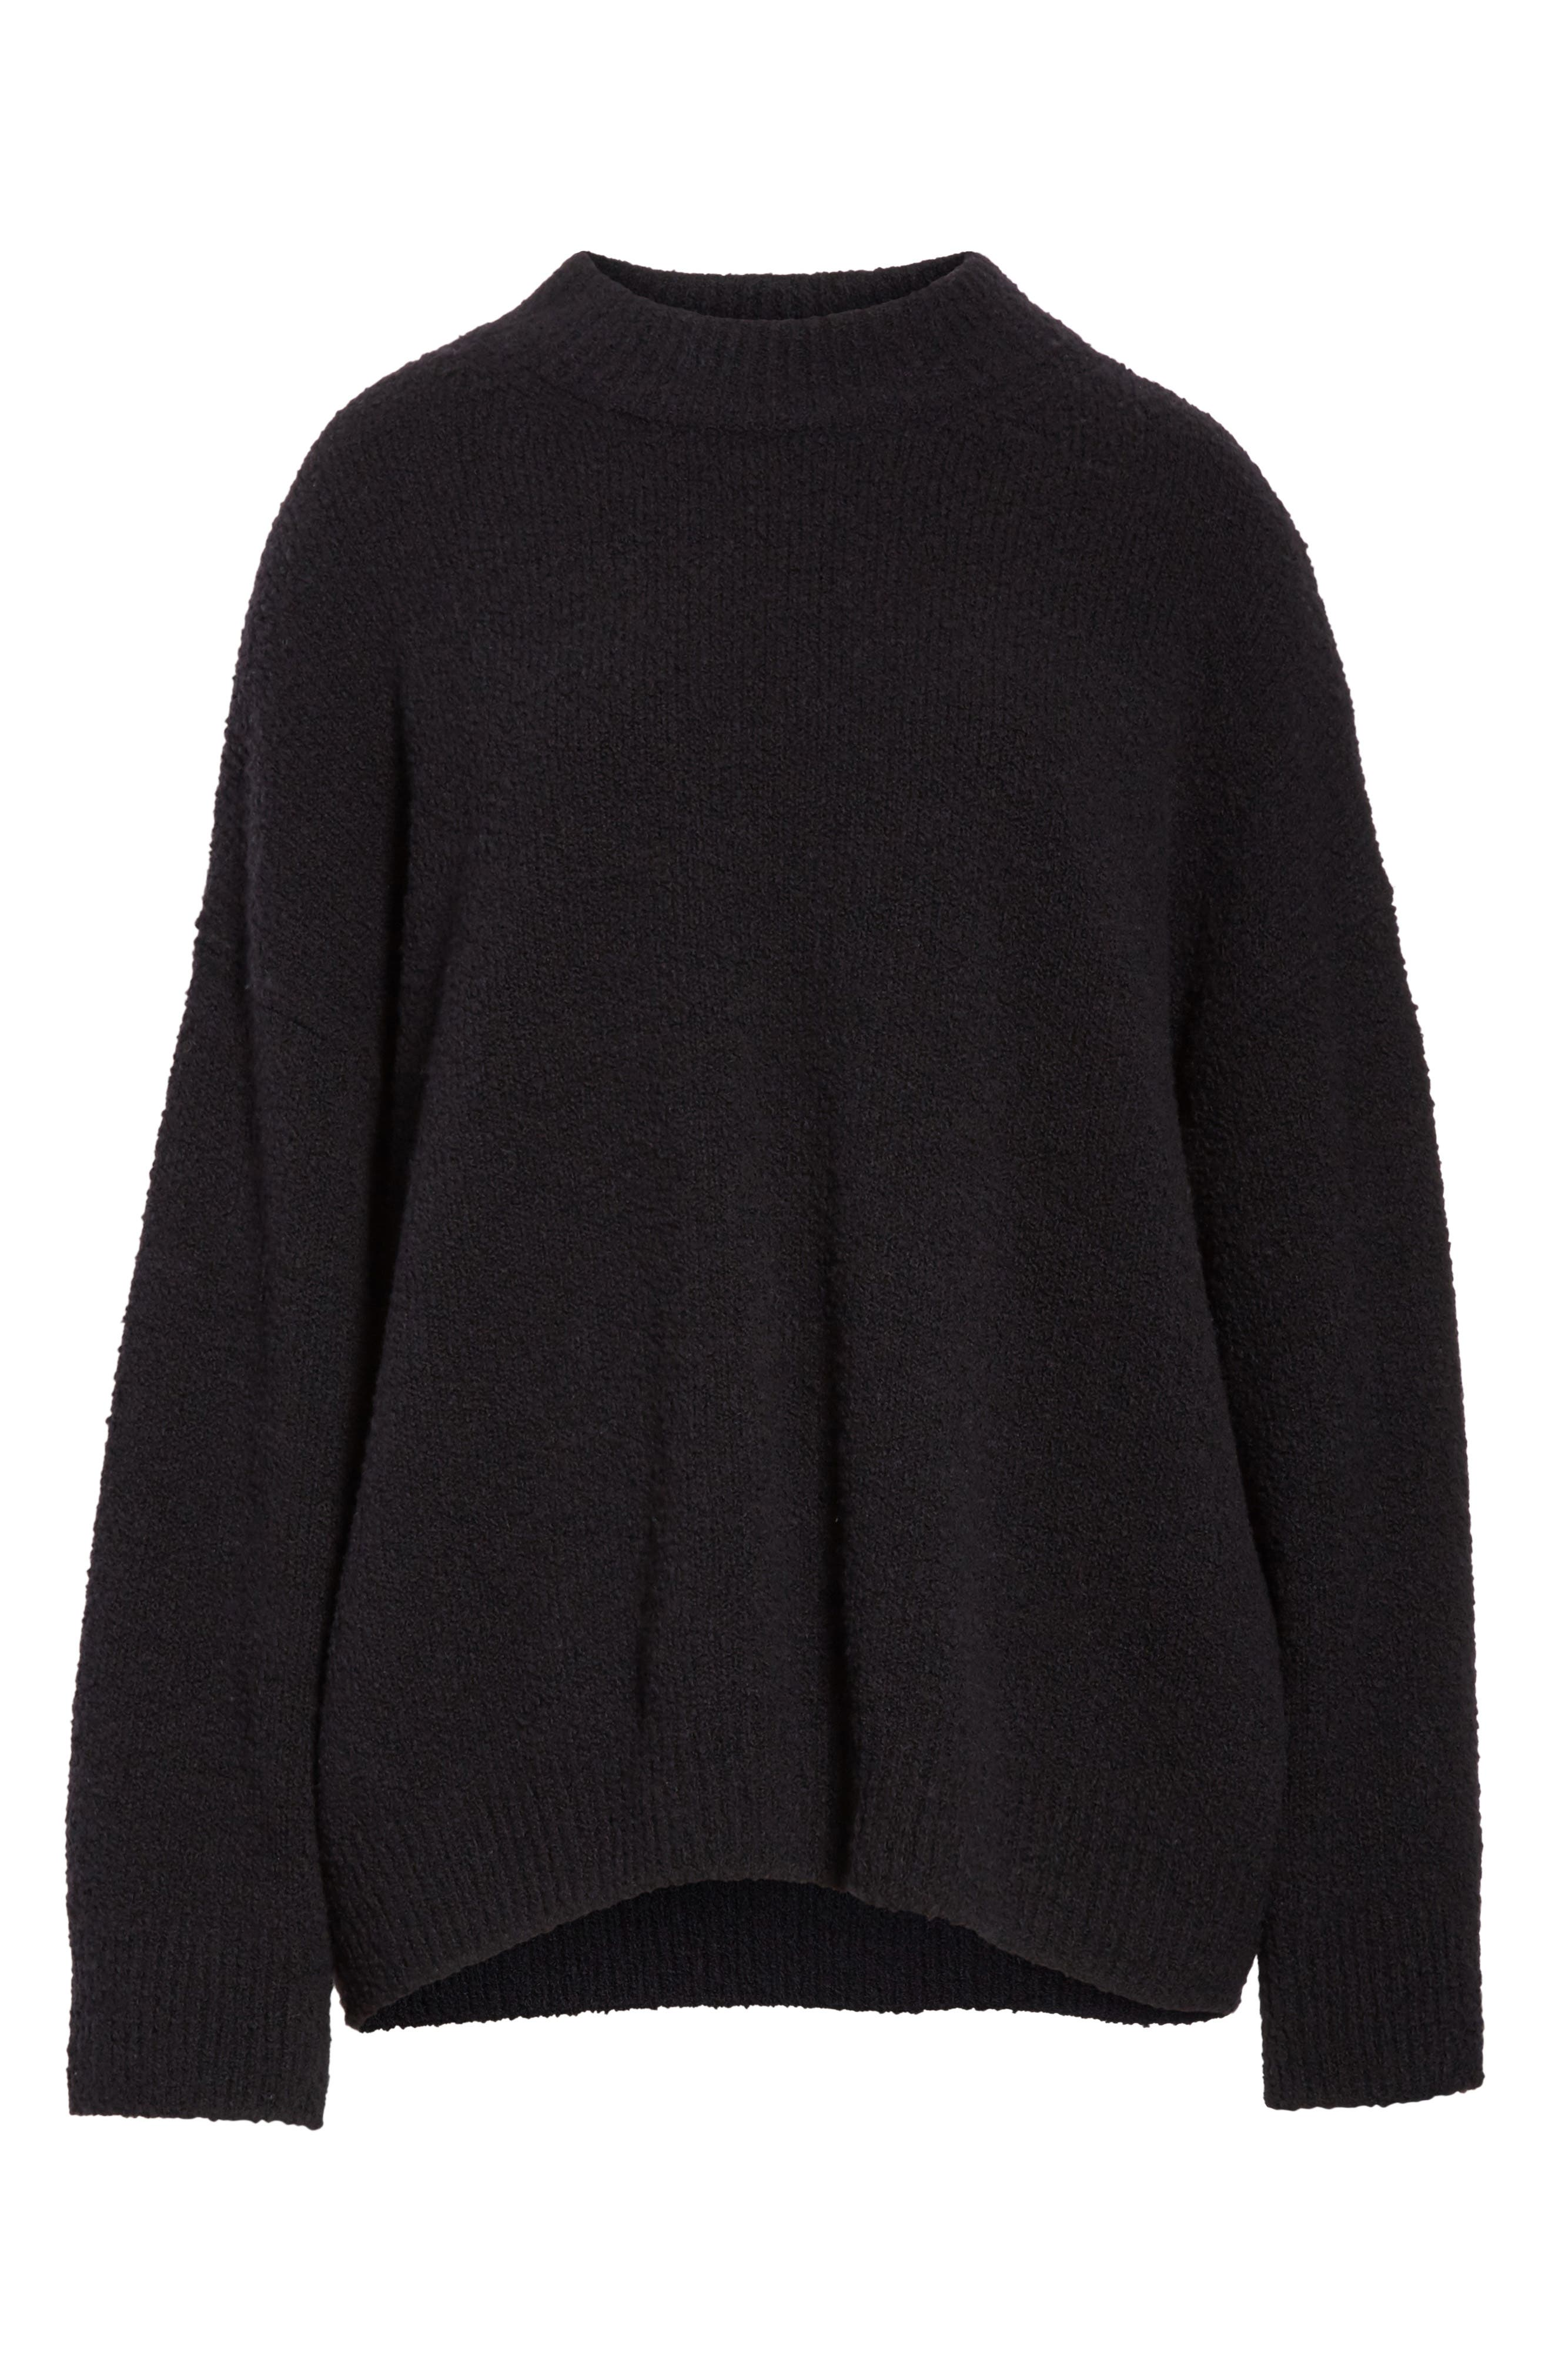 Boxy Knit Pullover,                             Alternate thumbnail 6, color,                             001